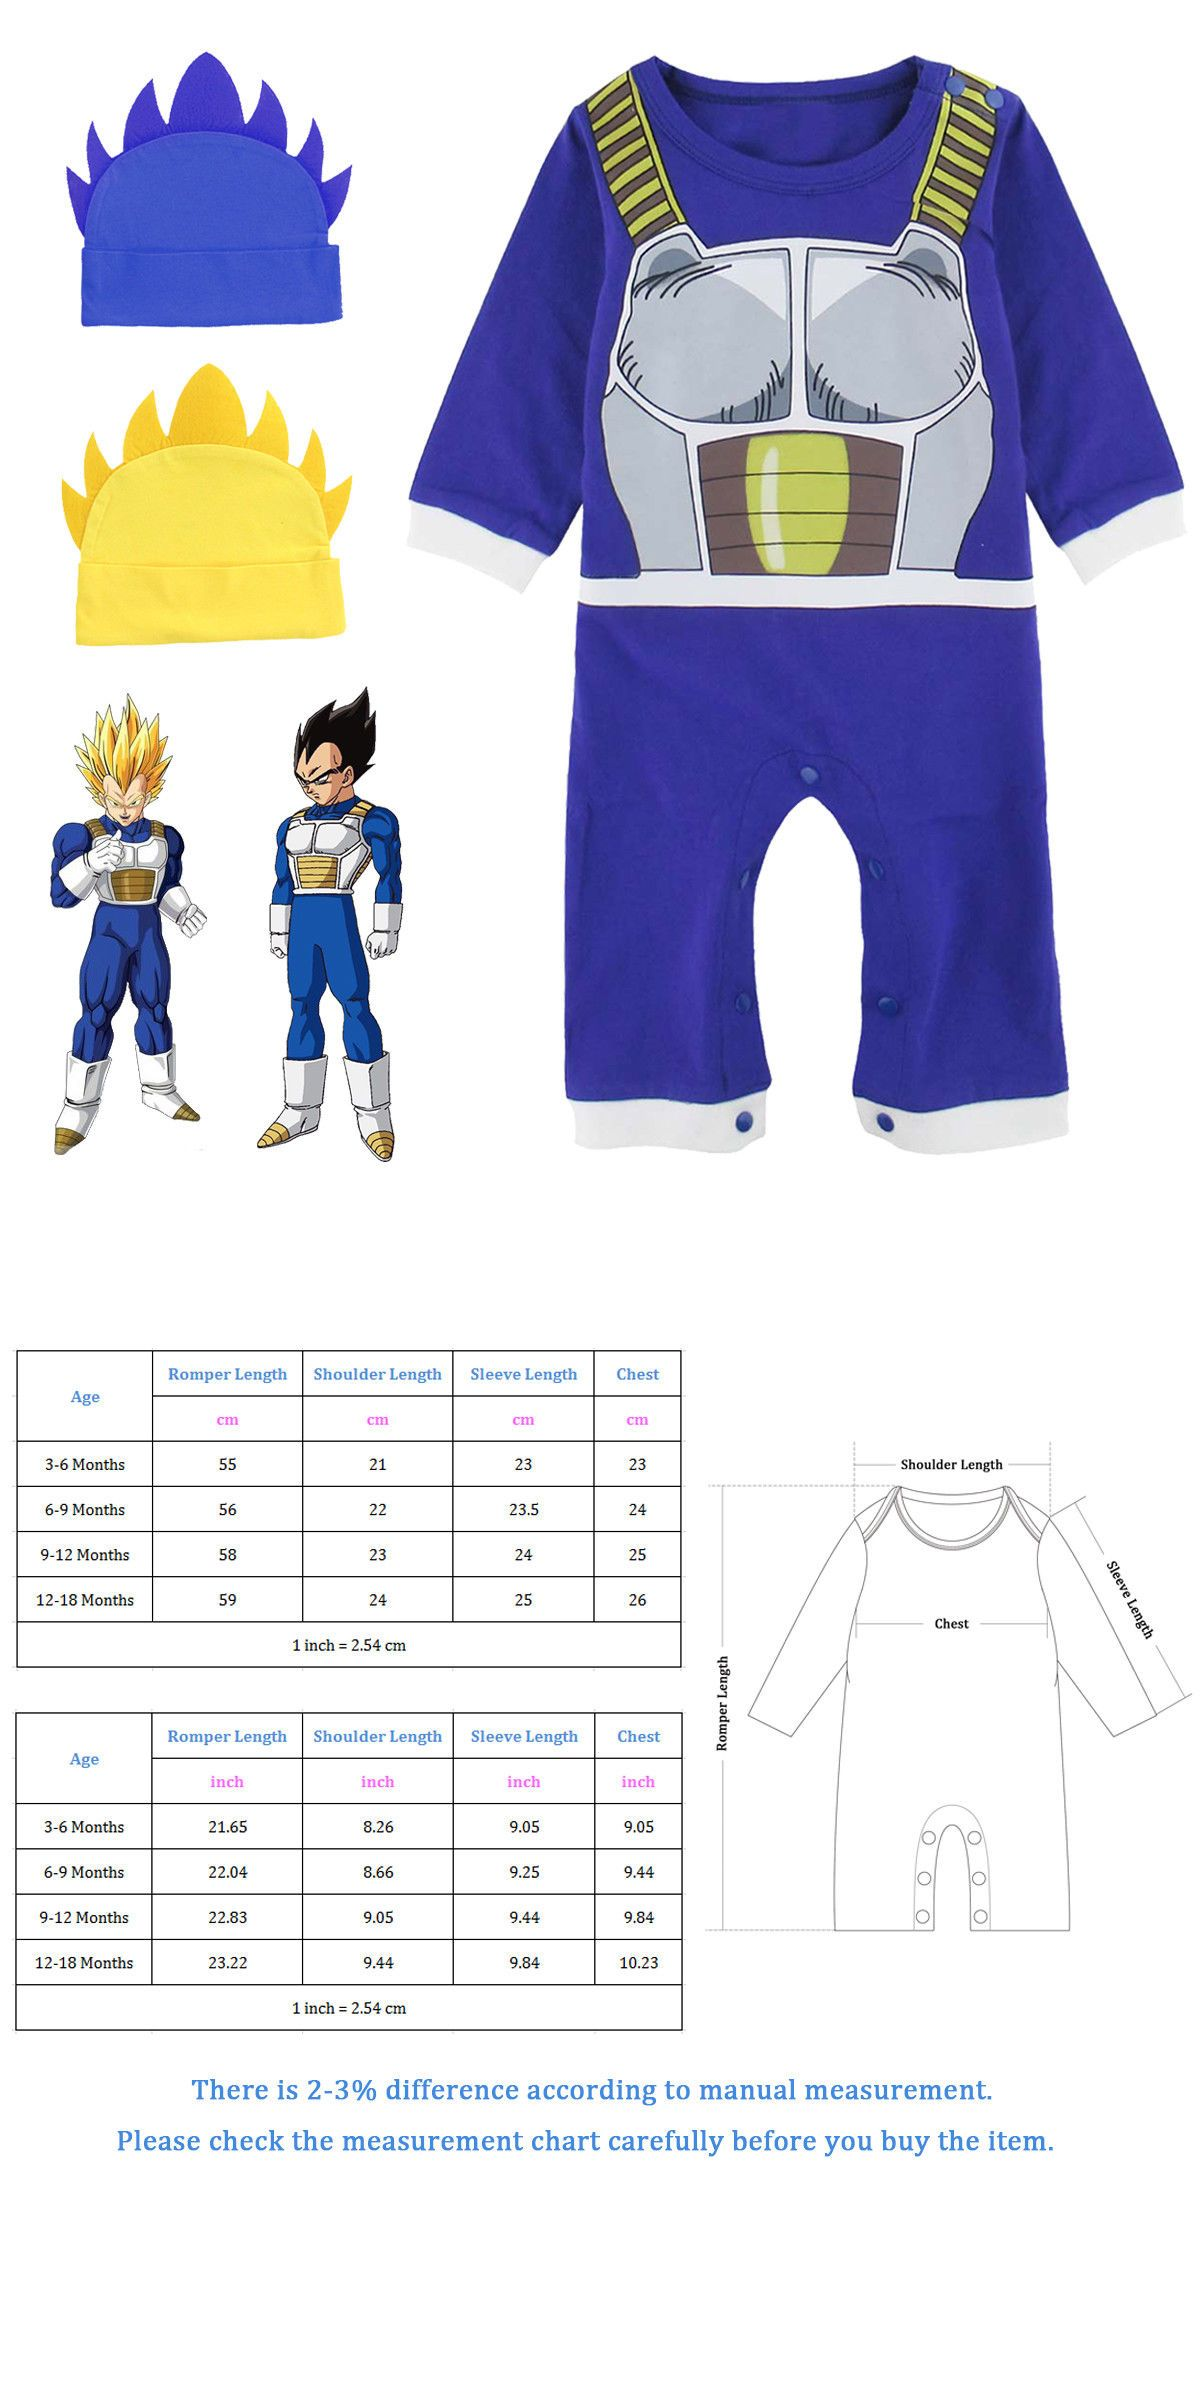 e2a2e3551 One-Pieces 57784: Baby Boy Dragon Ball Z Costume Romper Newborn Vegeta  Outfit Infant Halloween Set -> BUY IT NOW ONLY: $17.58 on #eBay #dragon  #costume ...